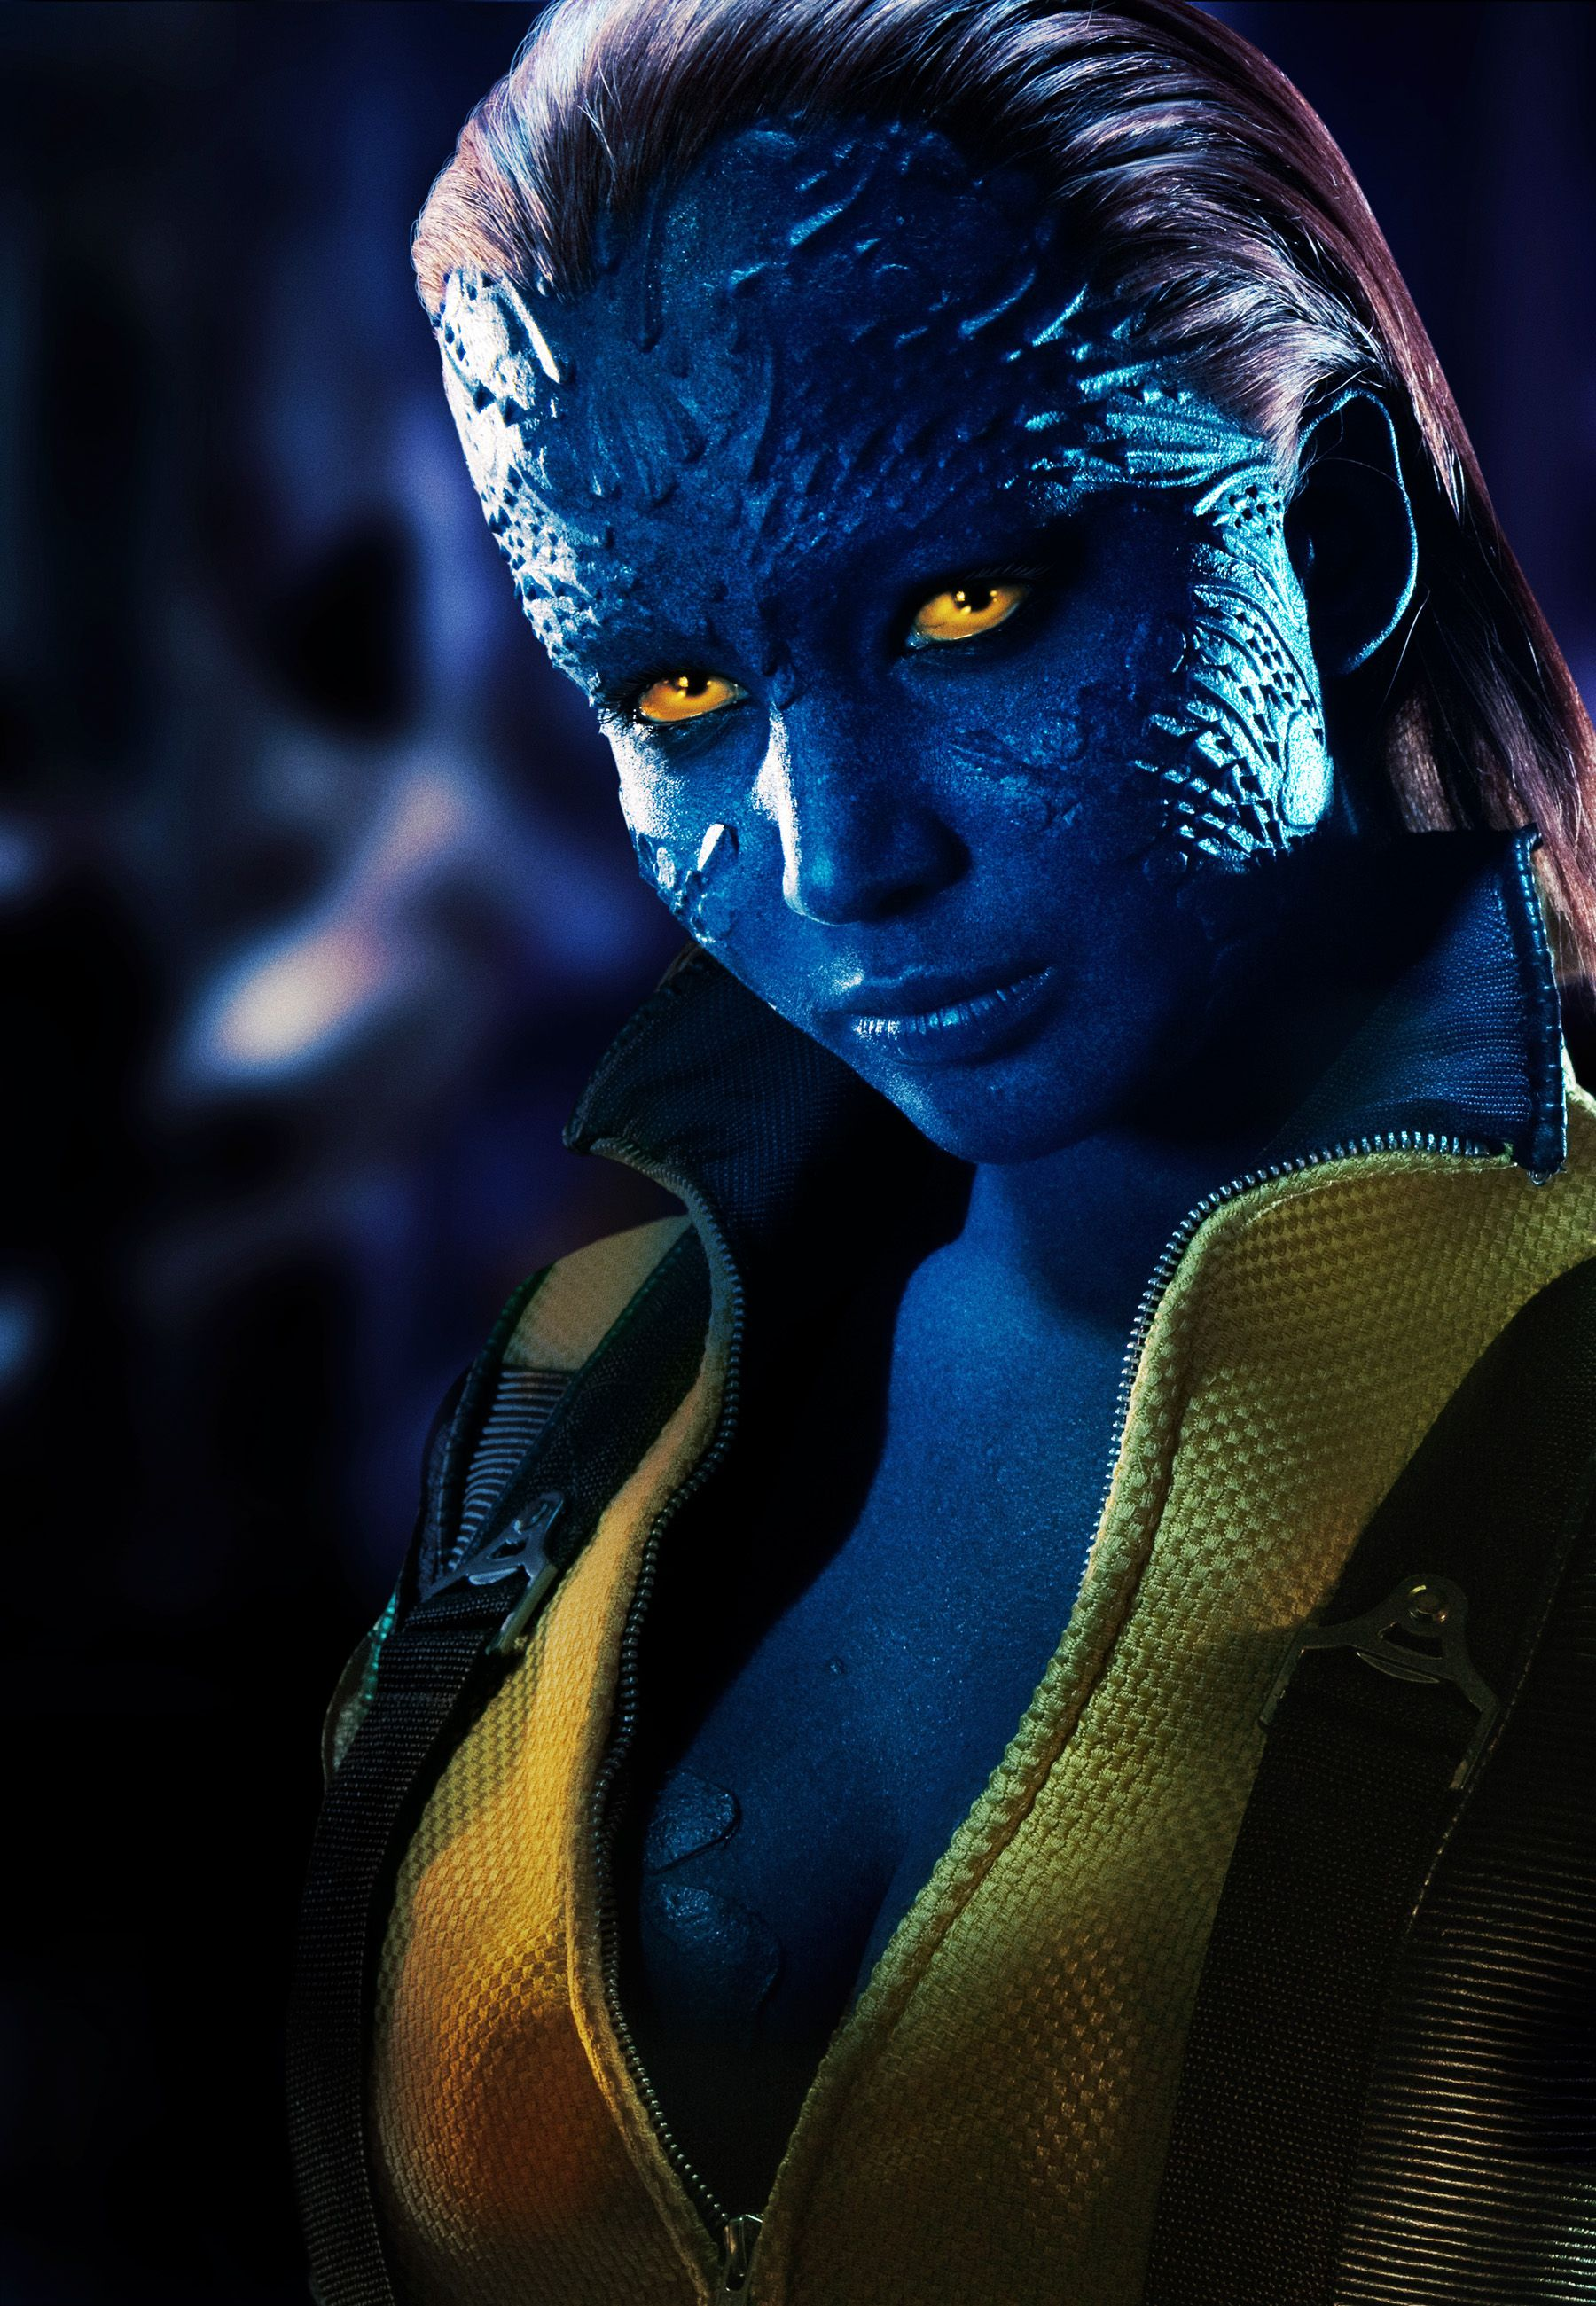 Pin By Marie Babcock On Avengers Assemble Jennifer Lawrence Mystique Mystique Marvel Marvel Heroes